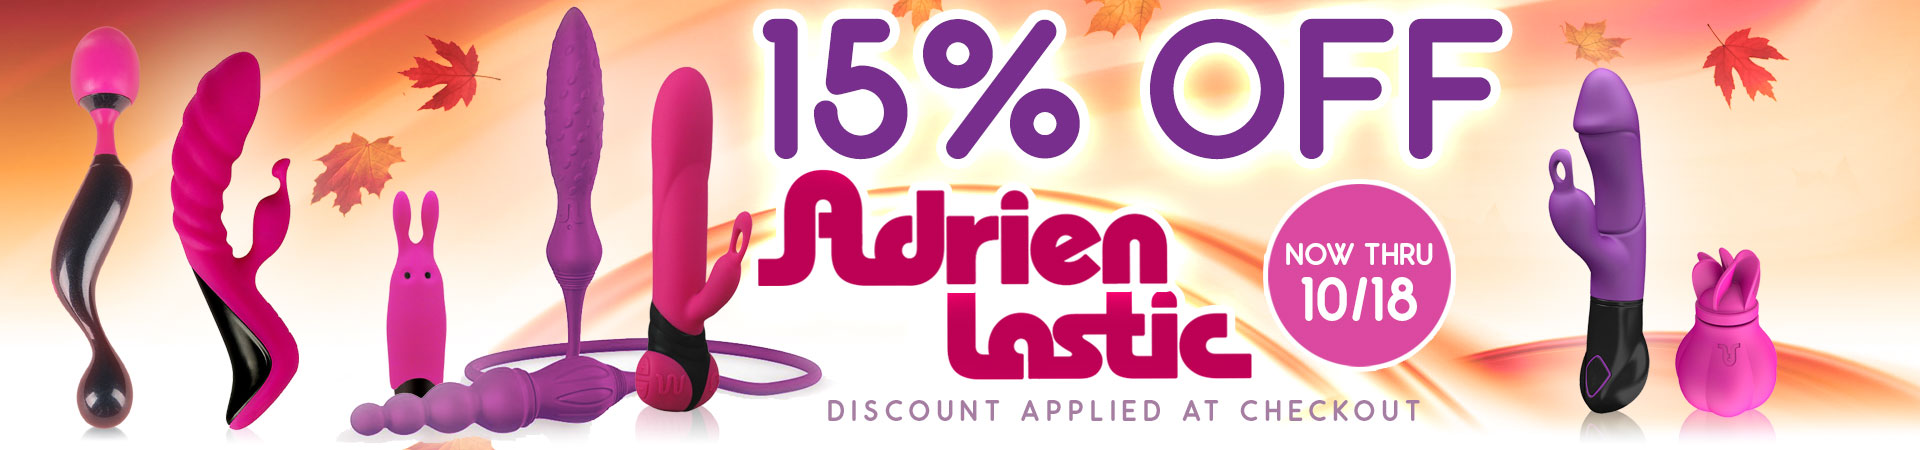 15% Off Adrien Lastic Toys - Now Thru 10/18 - Discount Applied At Checkout